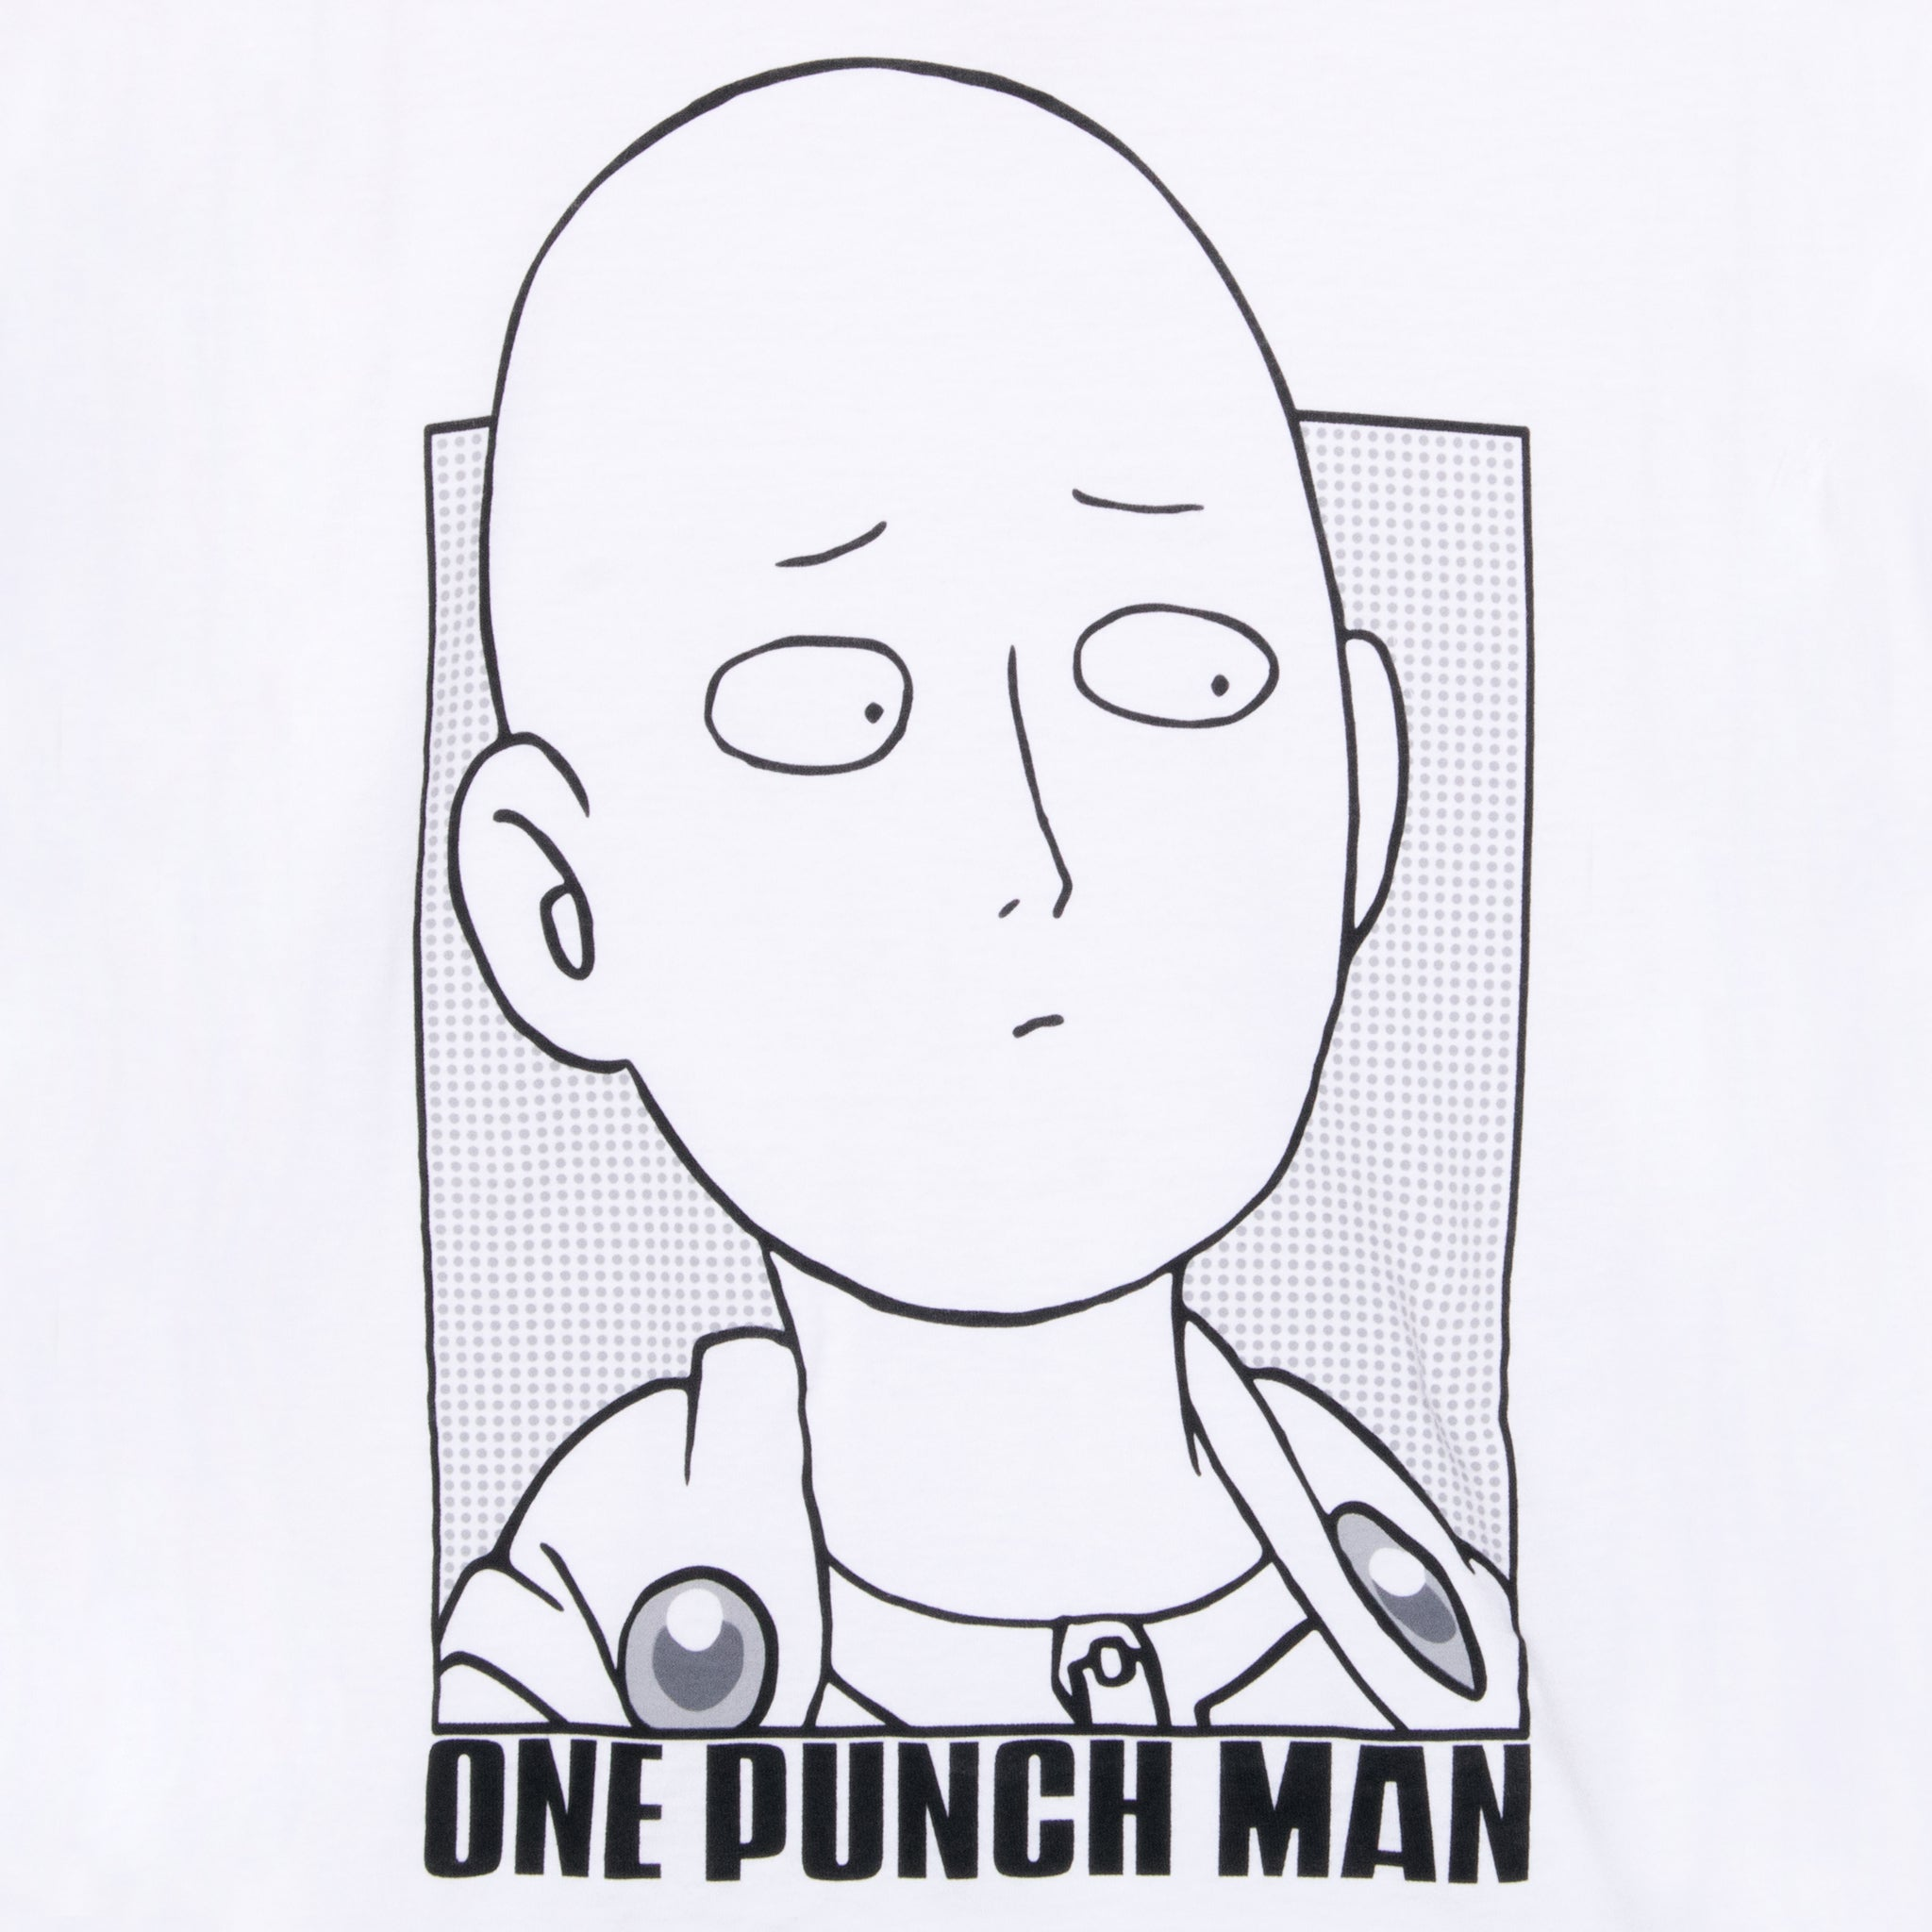 one punch man saitama anime junior graphic short sleeve apparel t-shirt shirt art culturefly